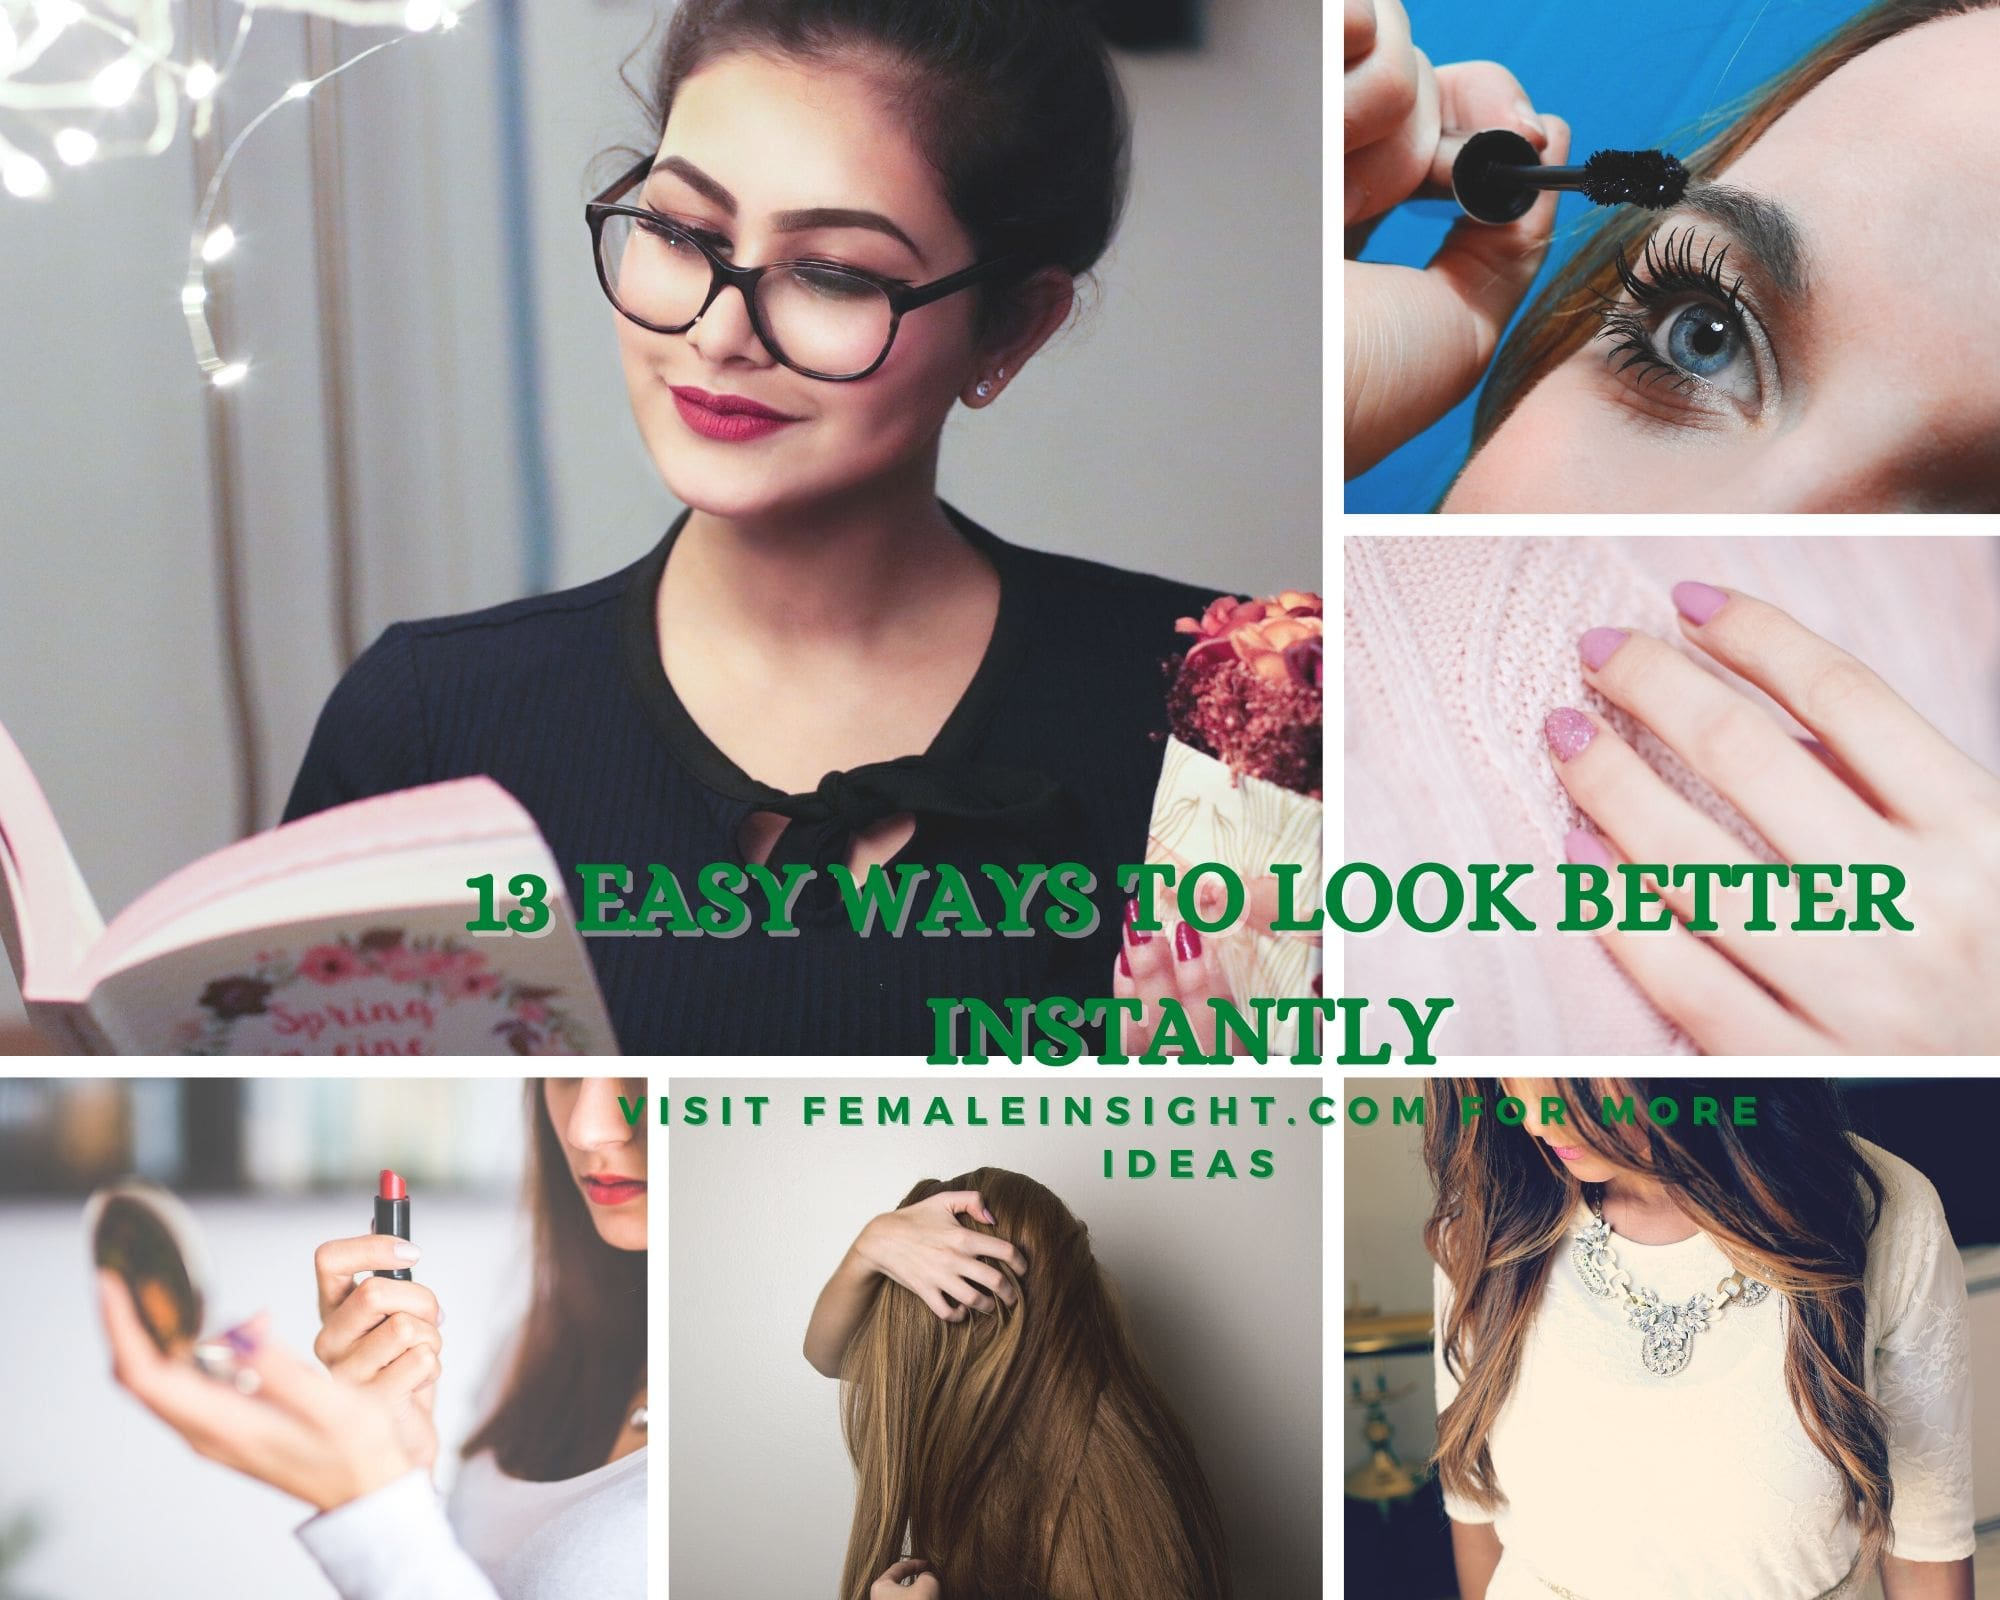 13 Easy Ways To Look Better Instantly